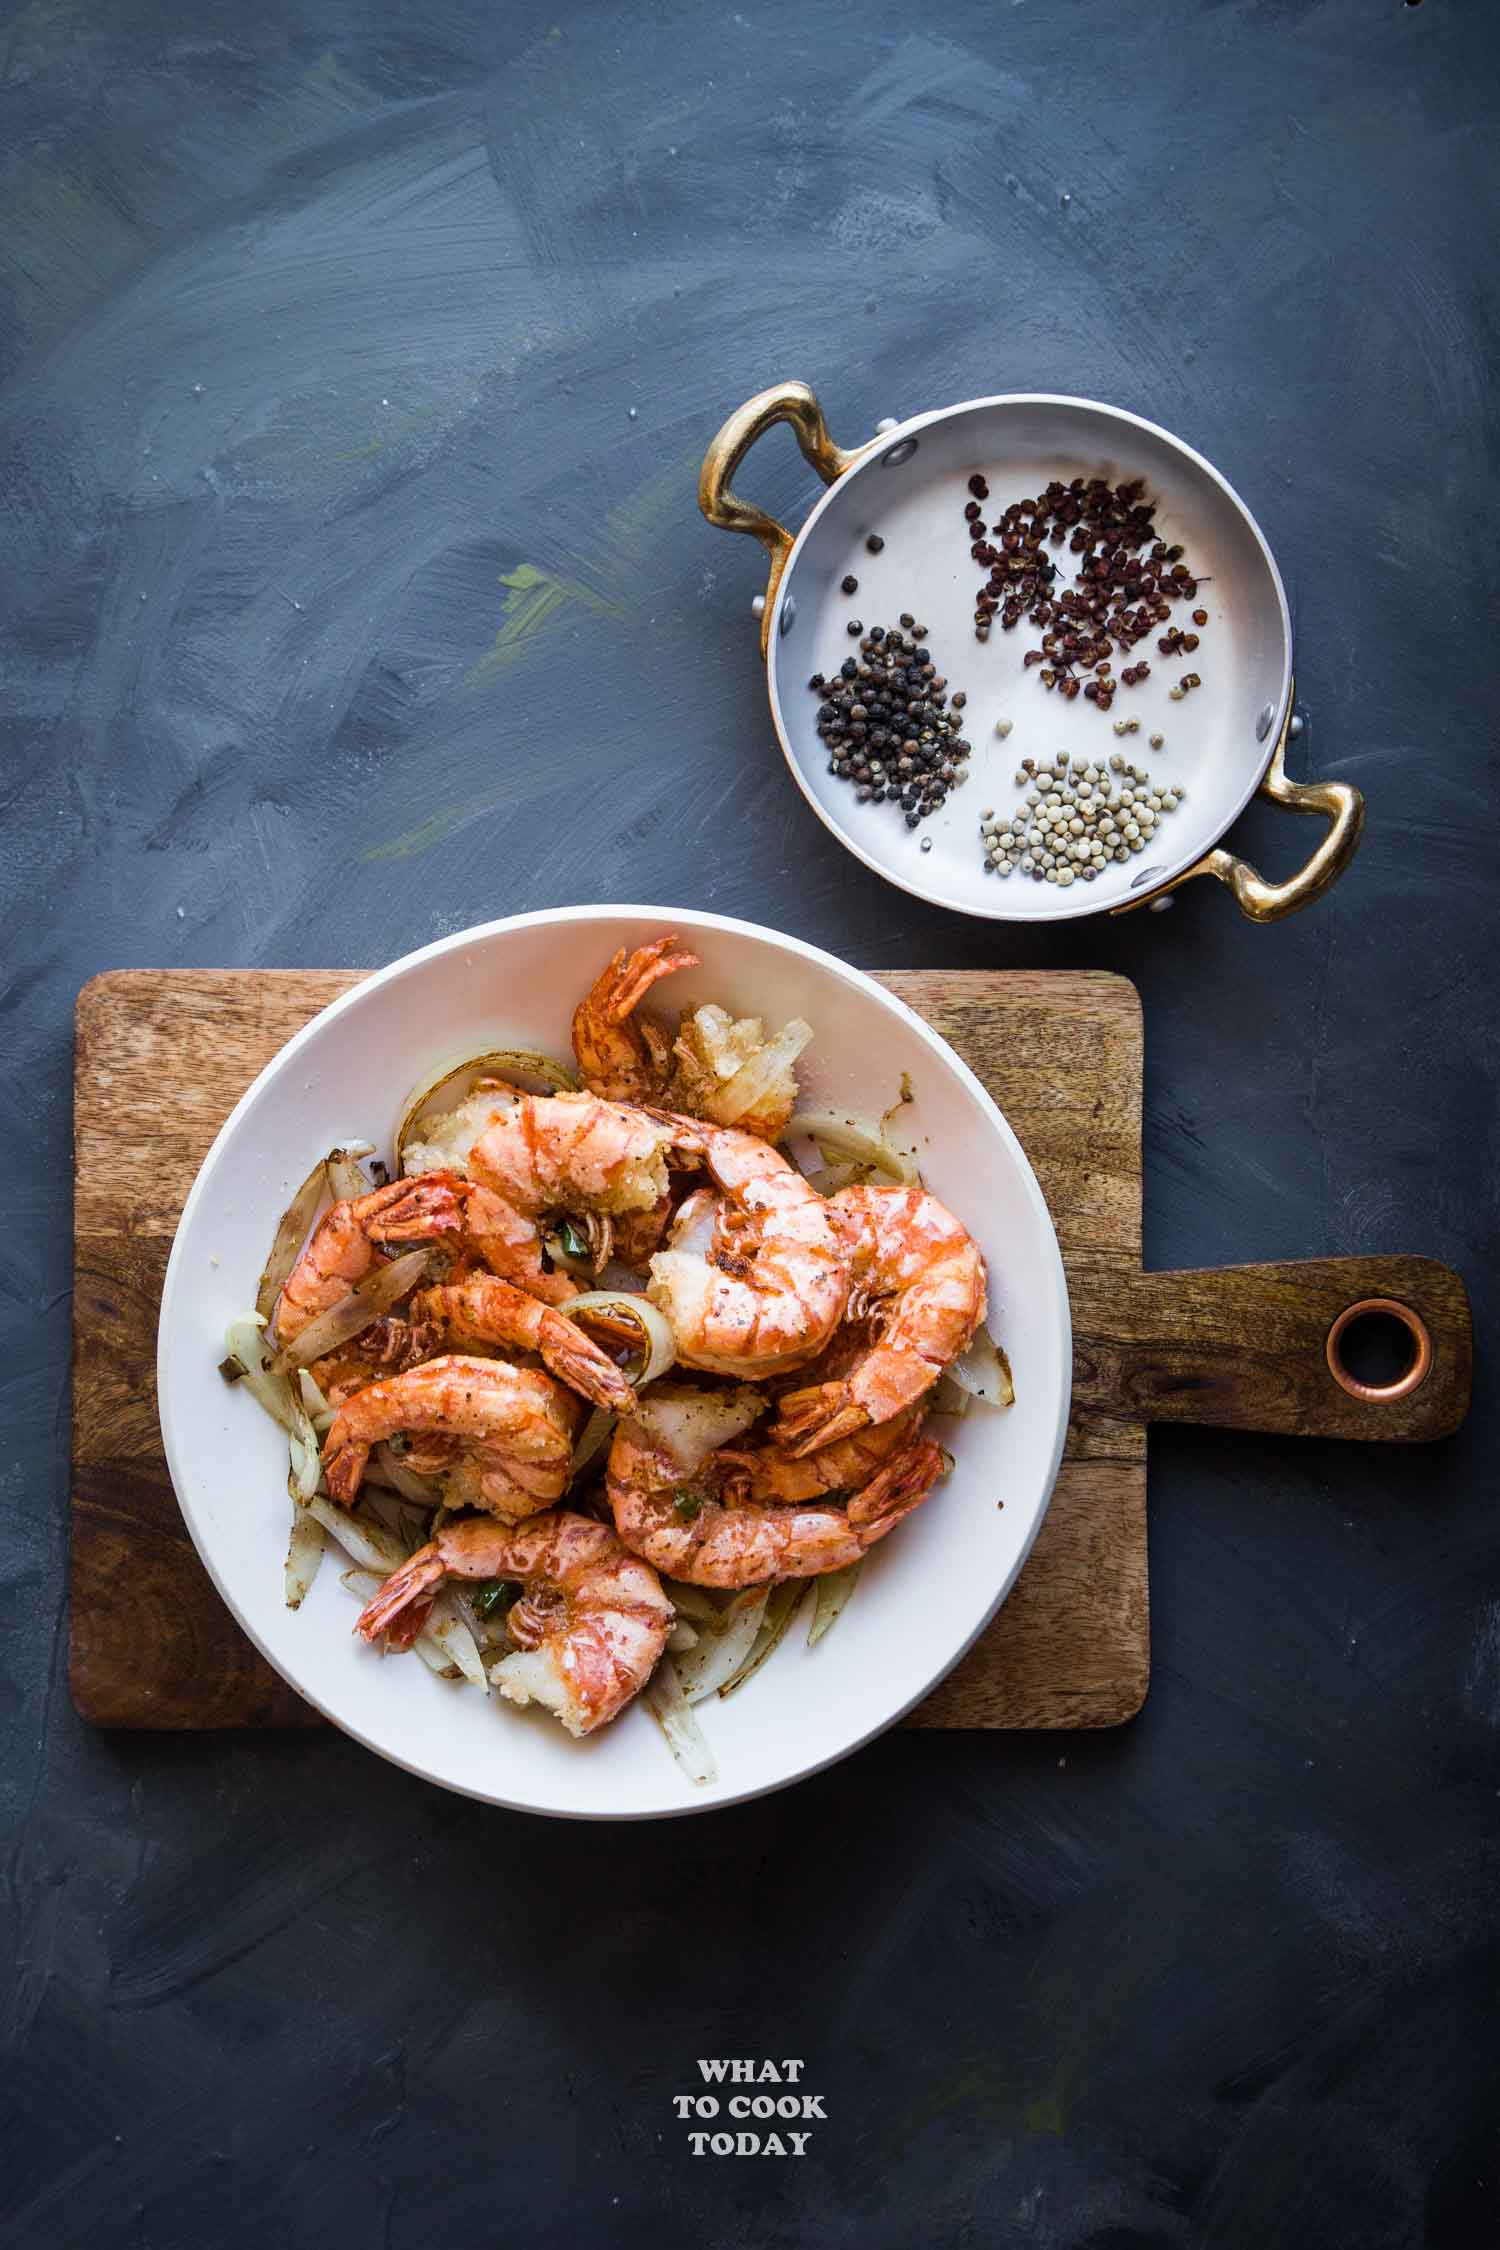 Udang Goreng Lada Garam (Salt and Pepper Shrimp)